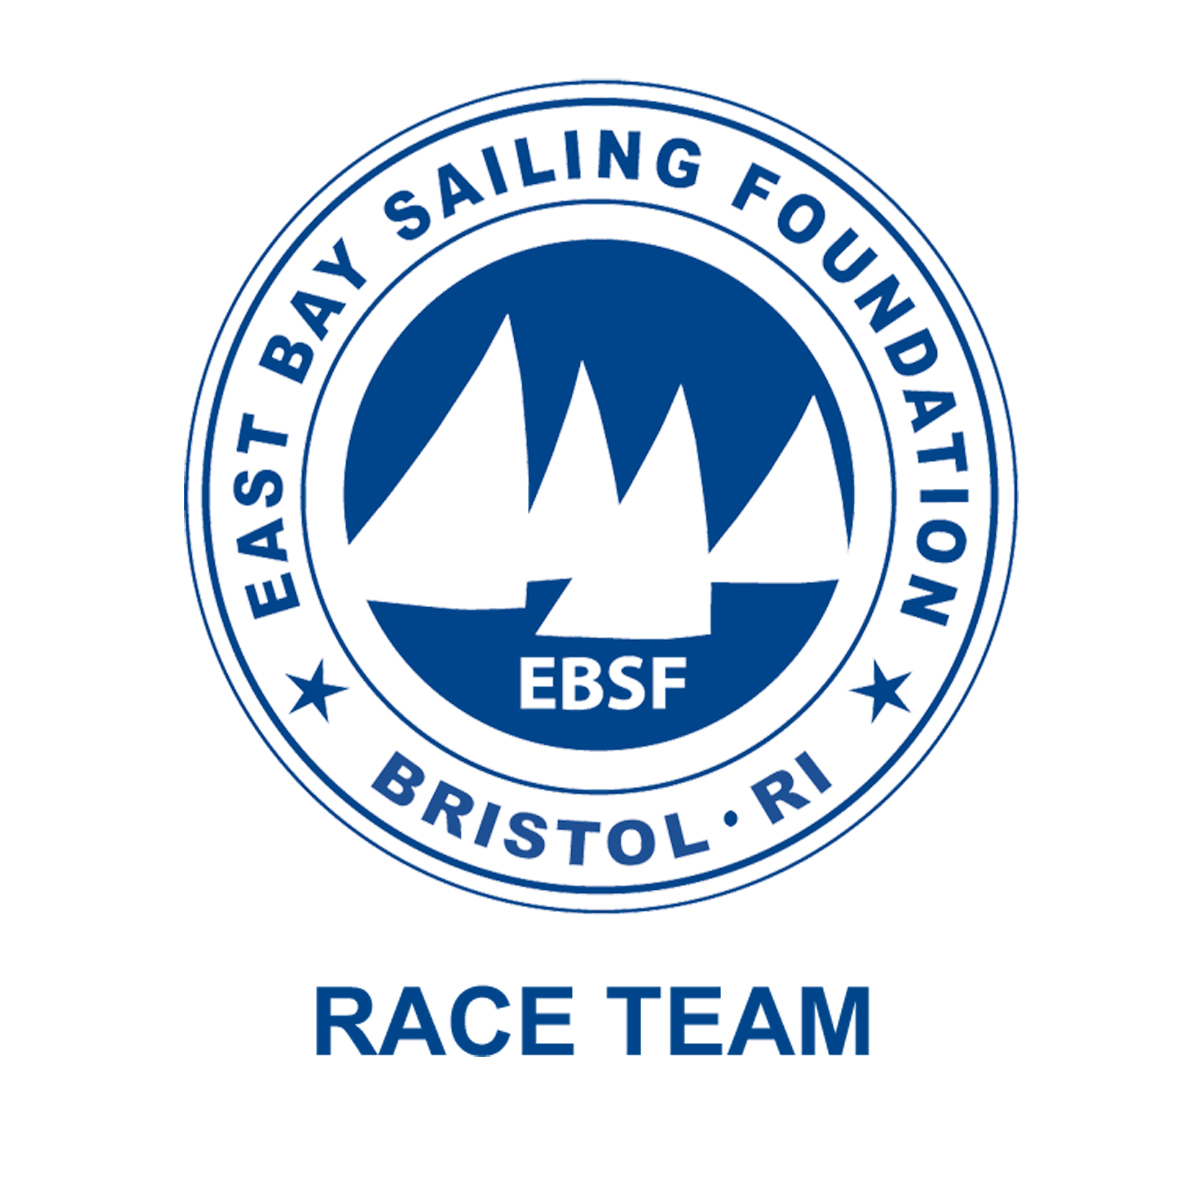 EBSF - RACE TEAM LOGO ADDED TO OTHER PRODUCTS